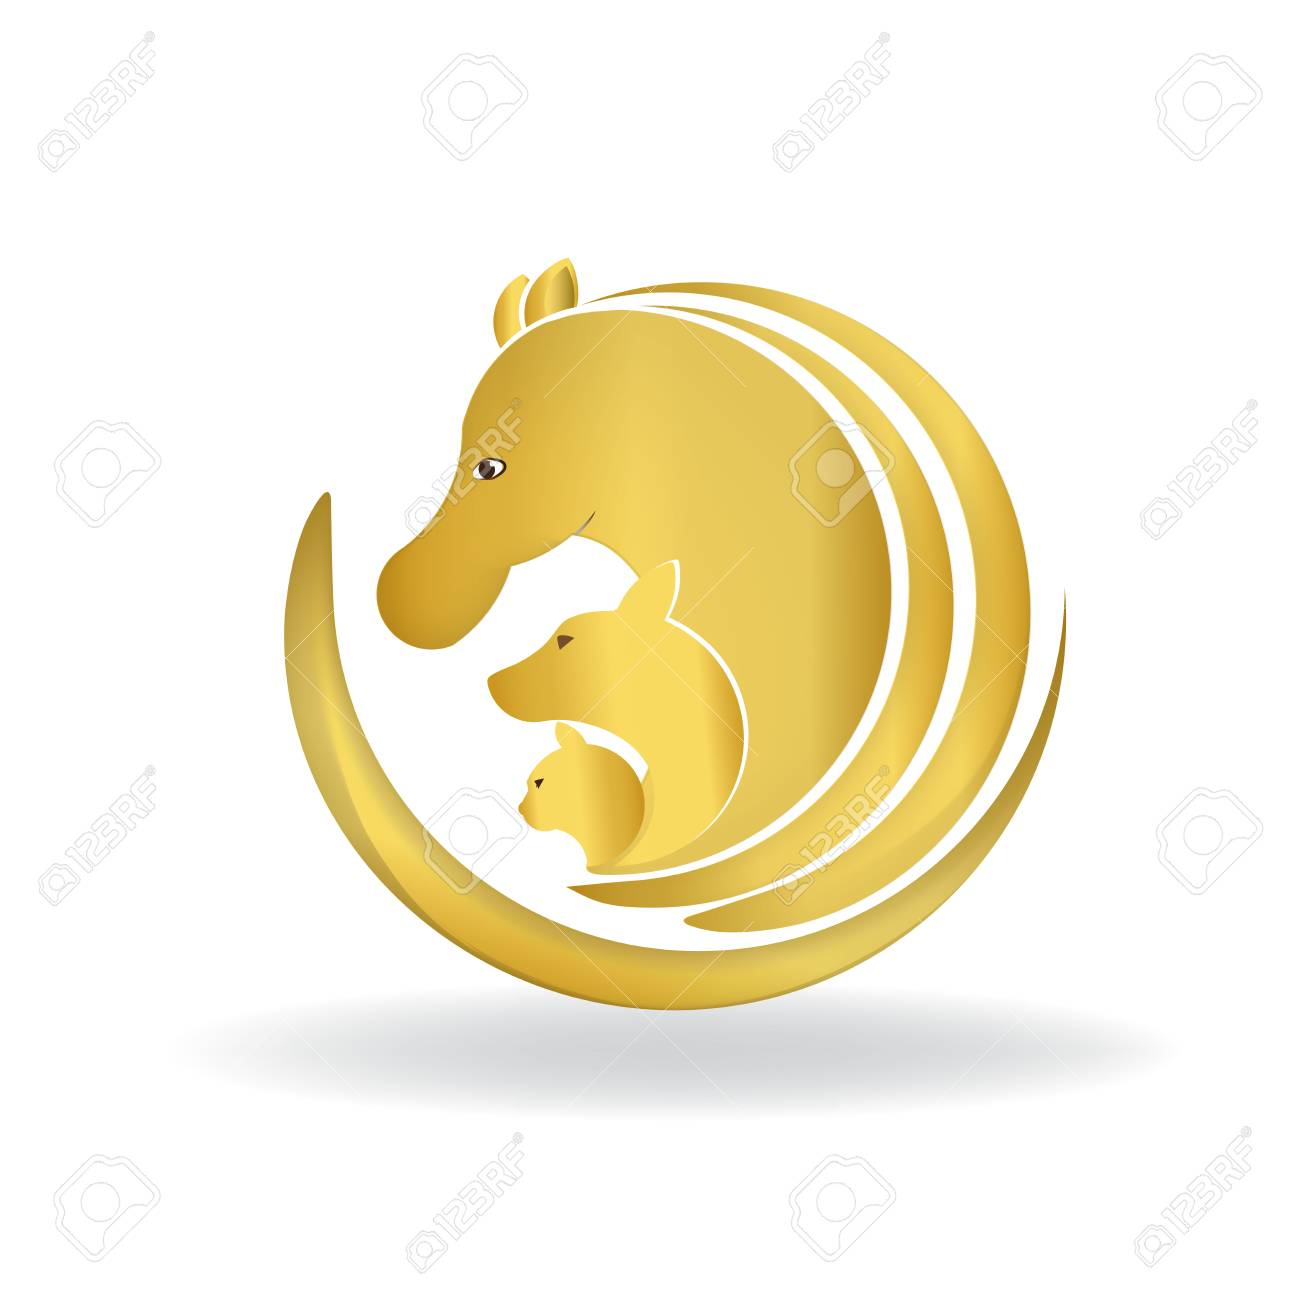 Horse Dog And Cat In Gold Color Logo Design Vector Image